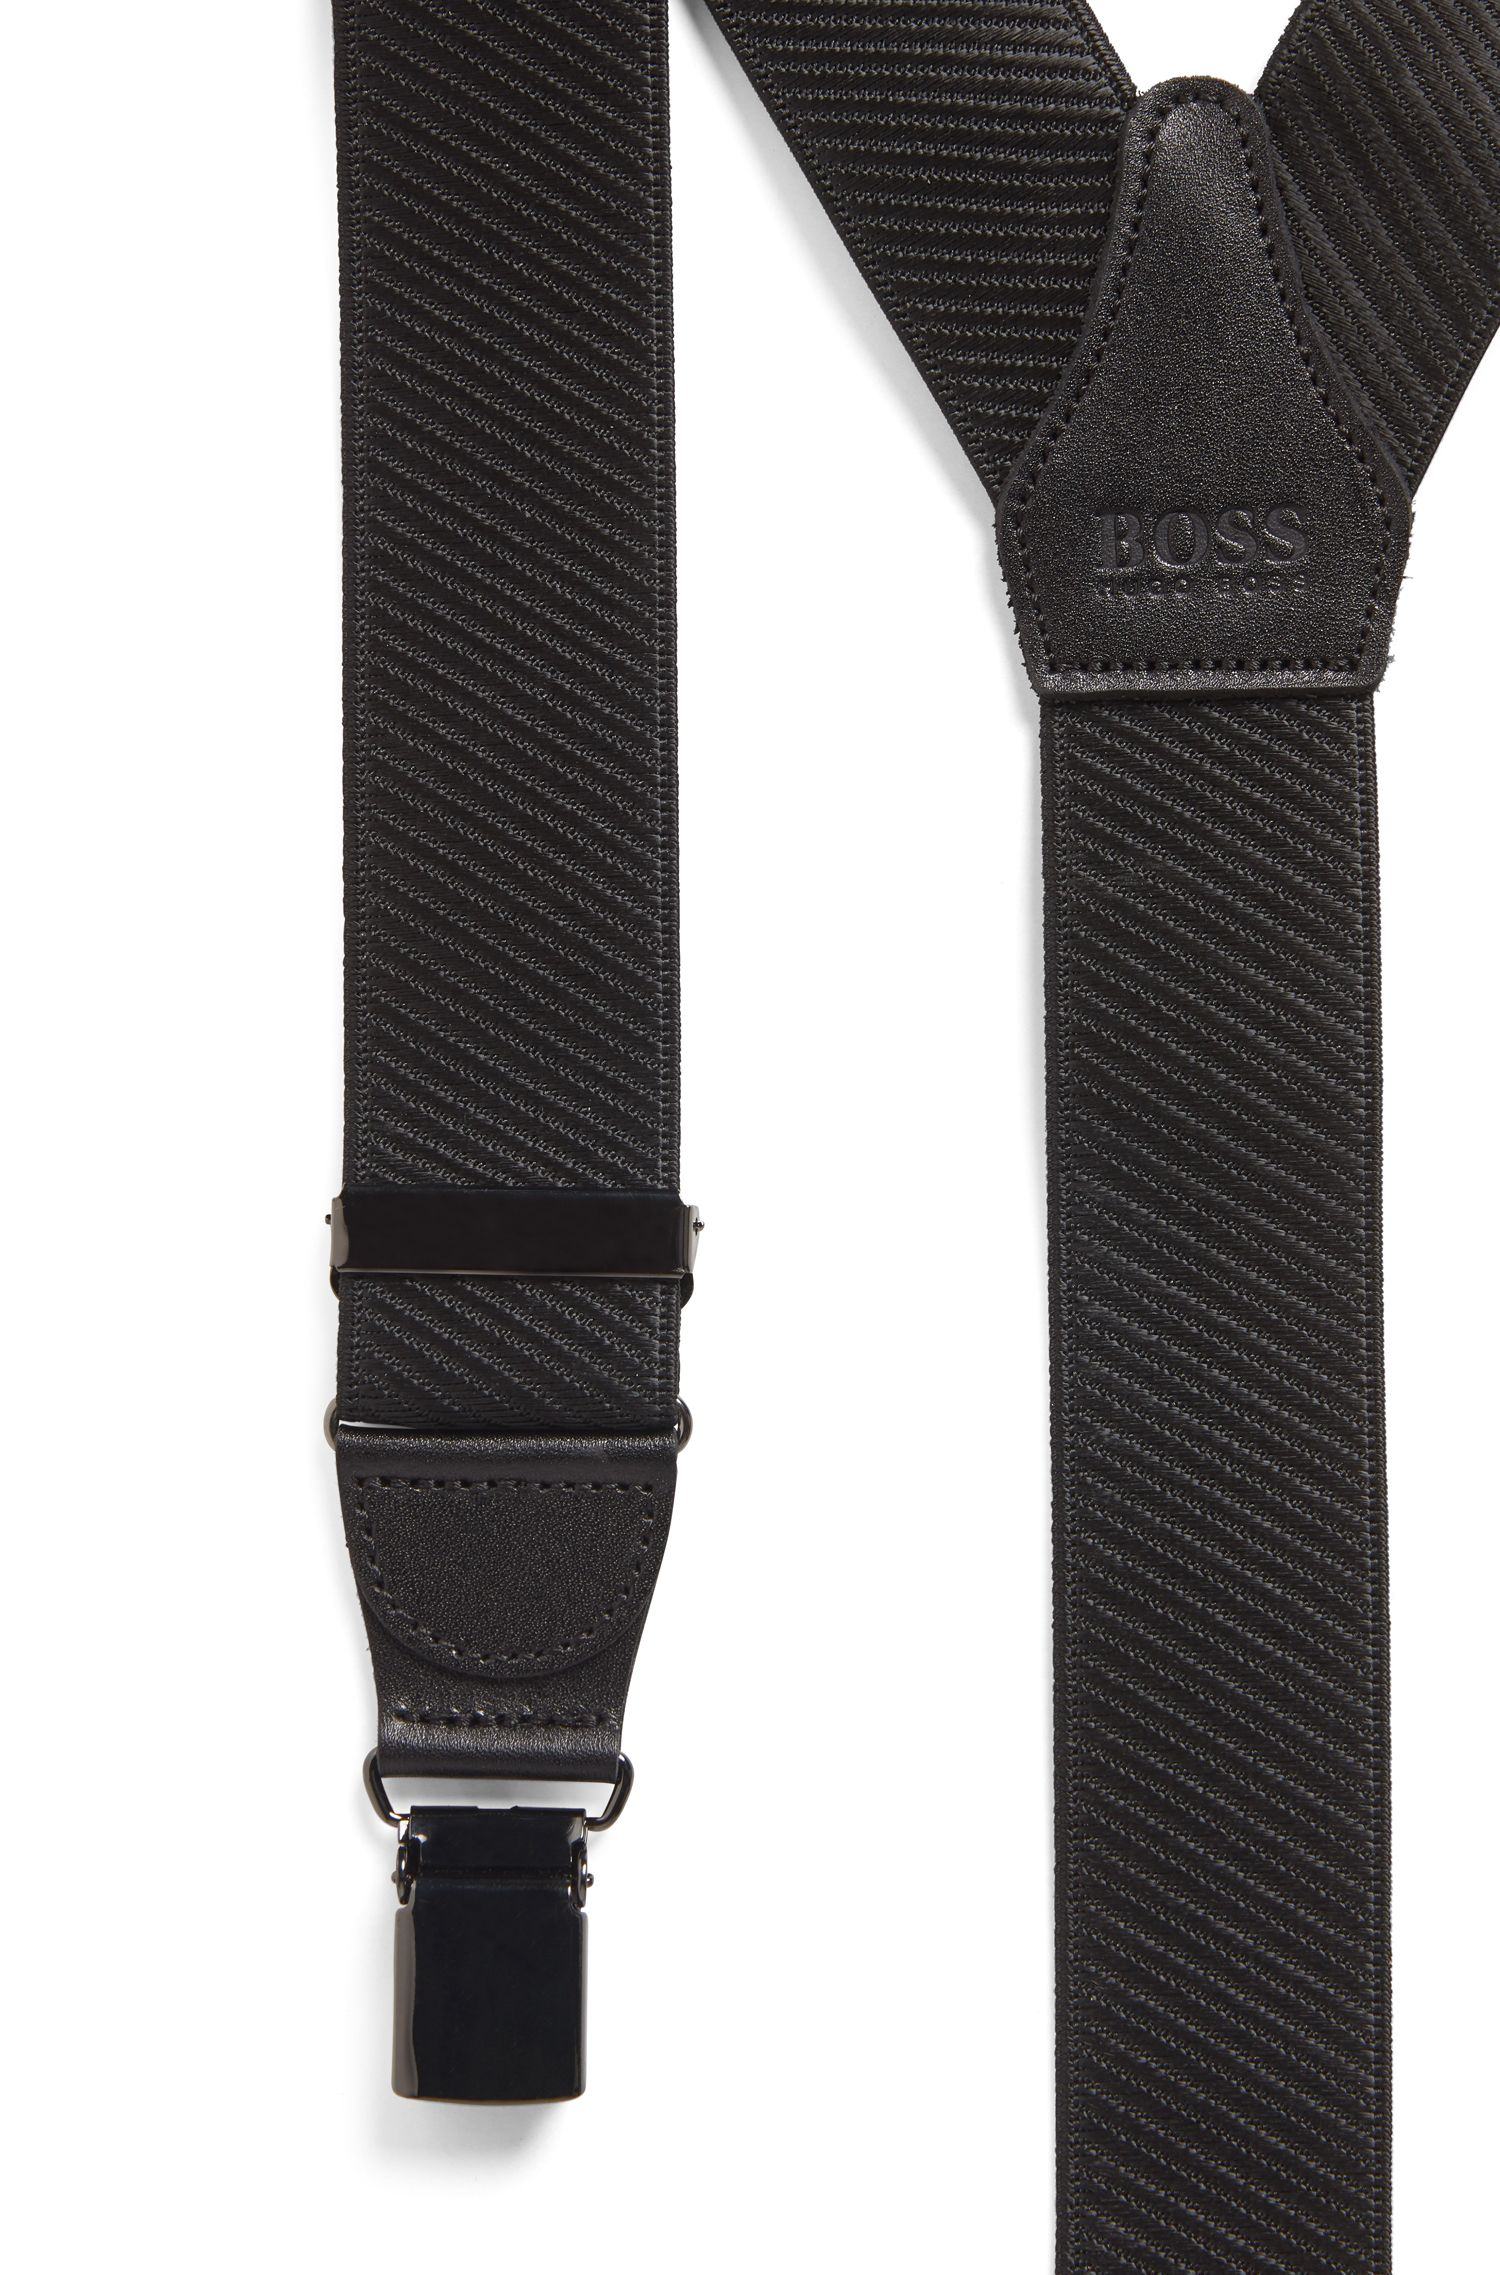 Gift-boxed suspenders with leather trim and gunmetal hardware, Black